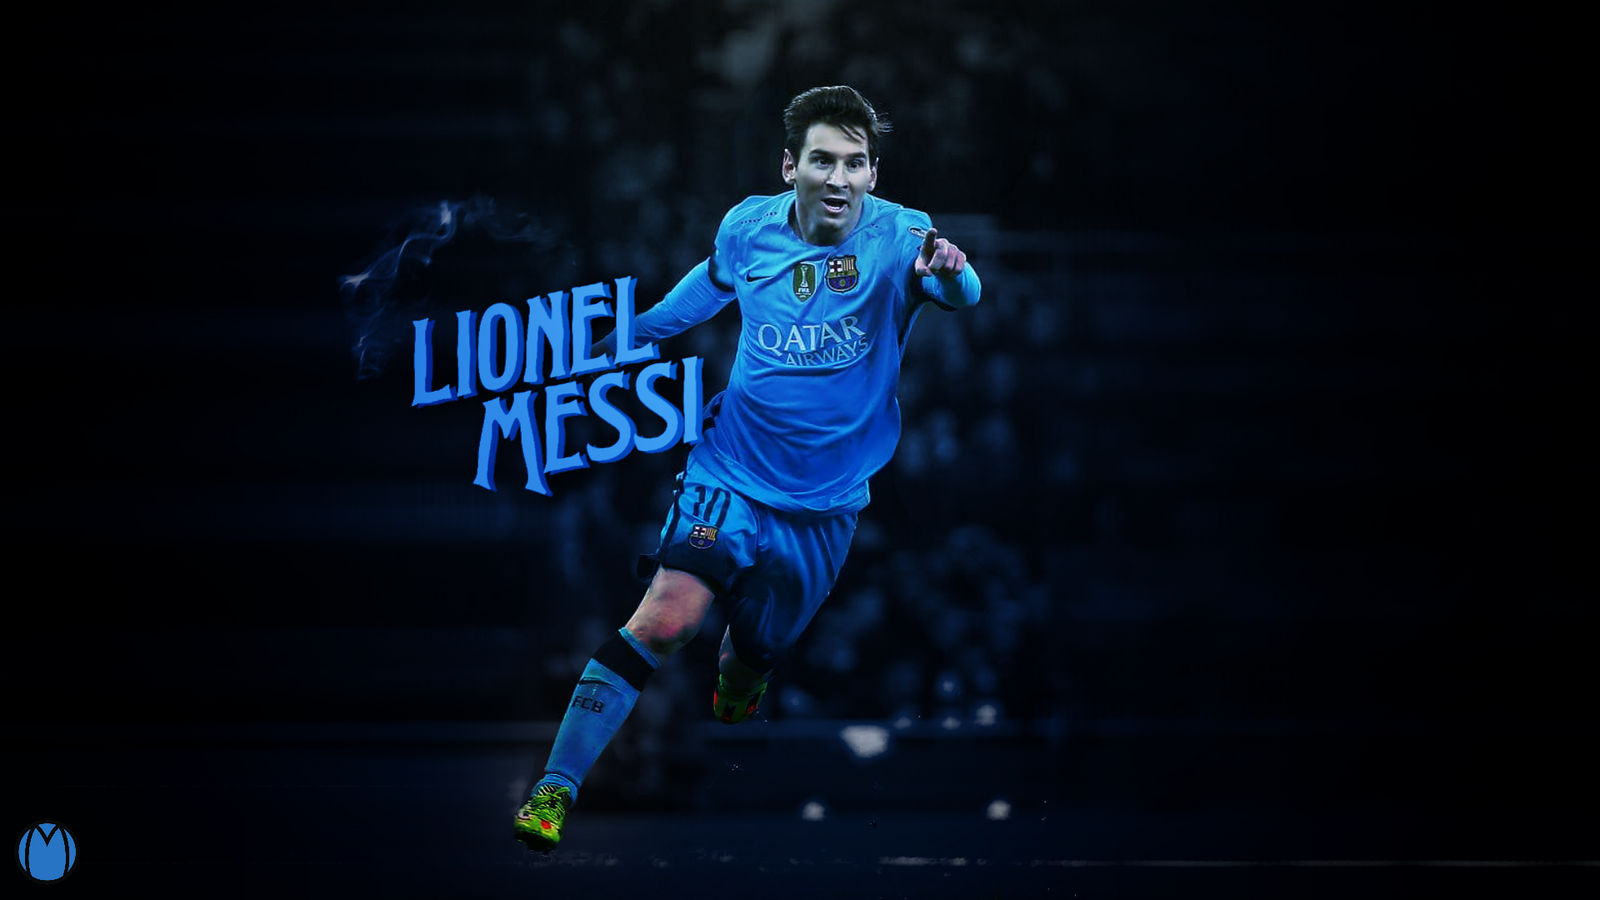 Lionel Messi 2016 Wallpaper - Design by MhmdAo on DeviantArt